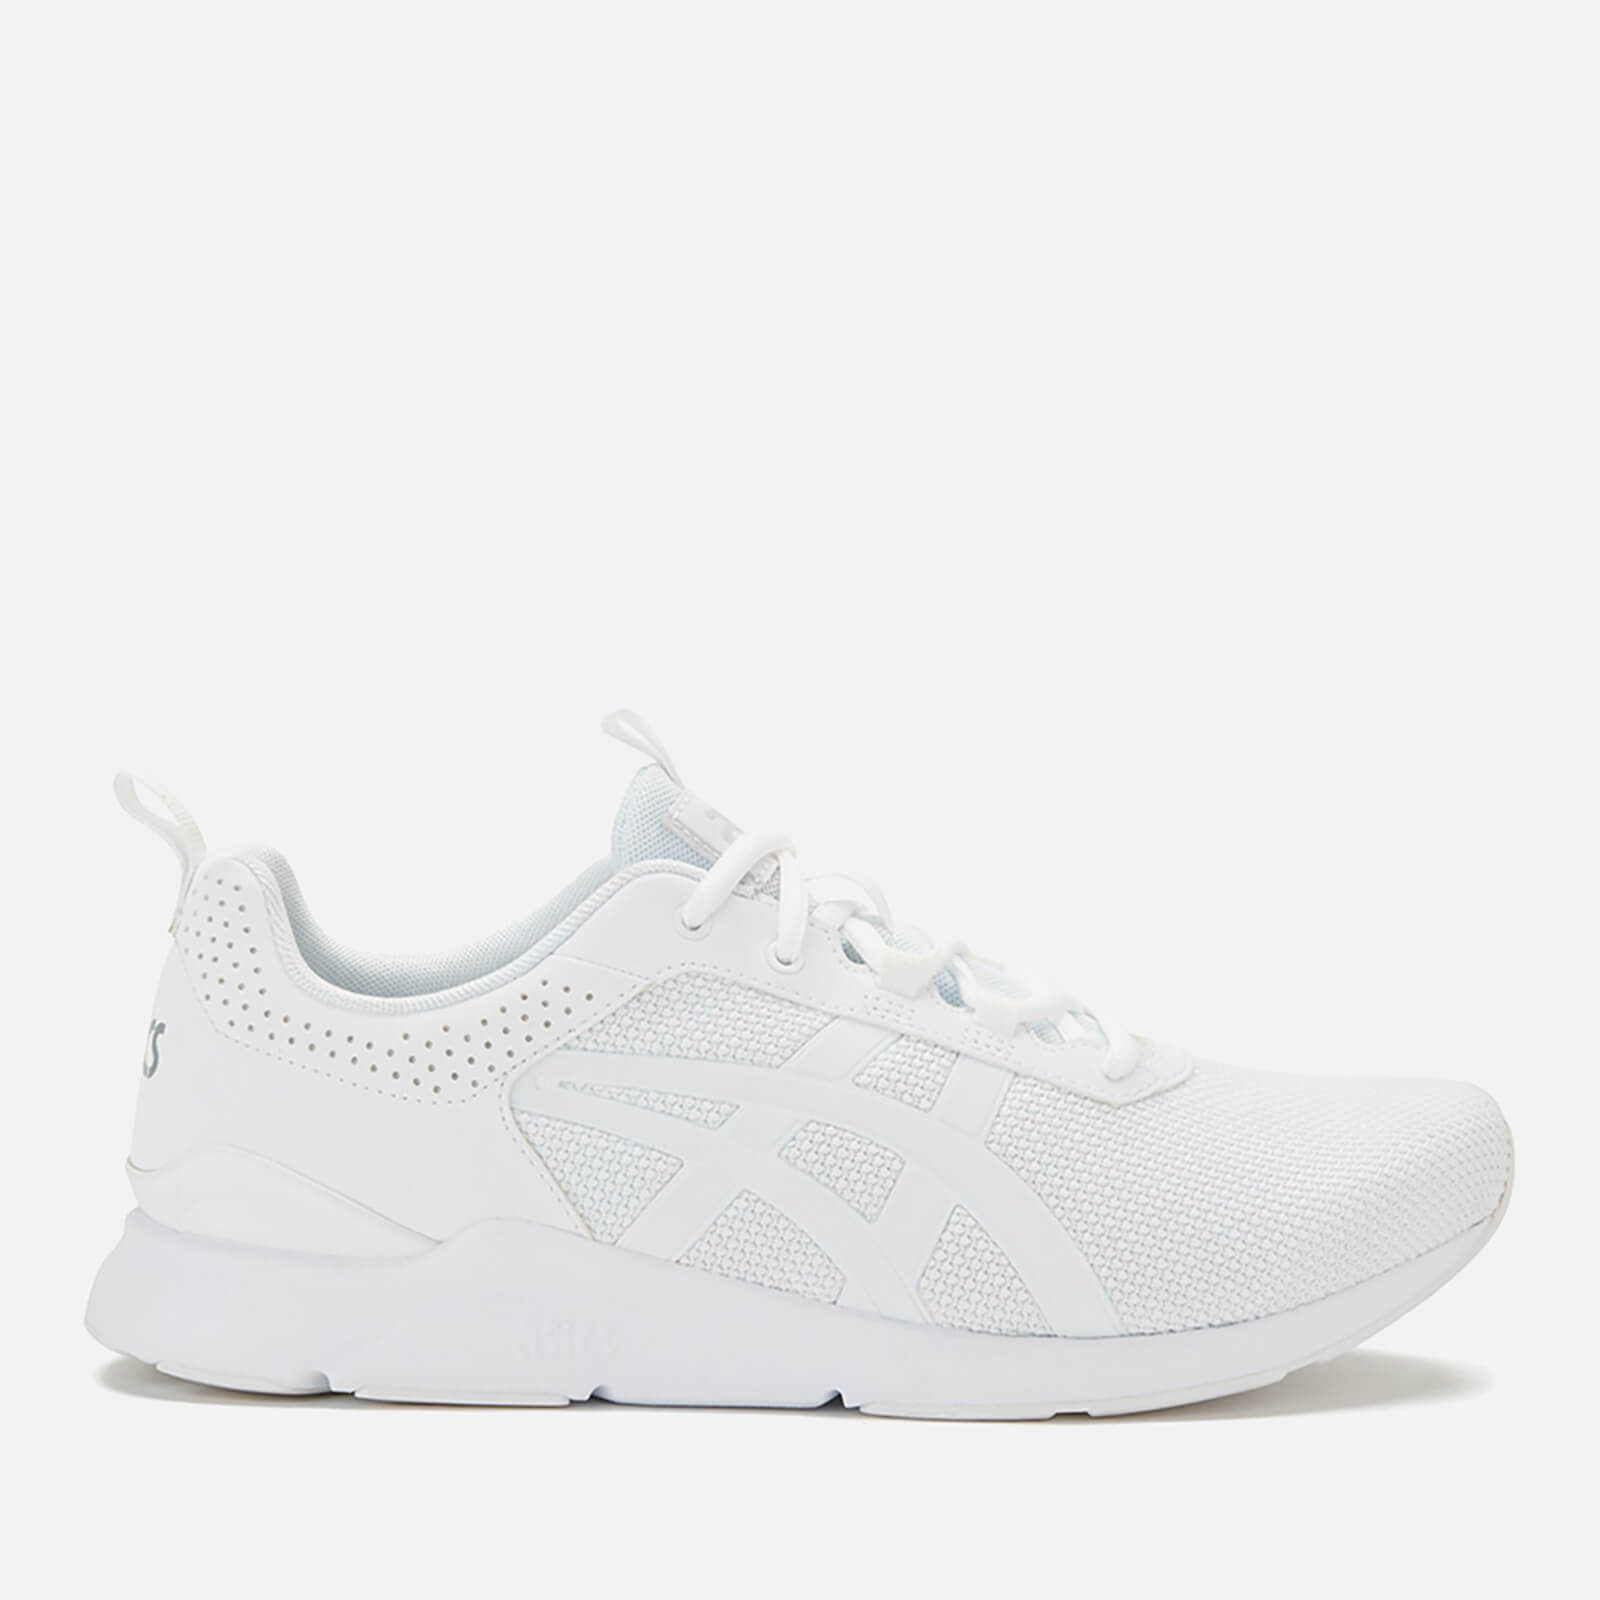 Asics Lifestyle Gel-Lyte Runner Trainers - White  3e9c0cca37569